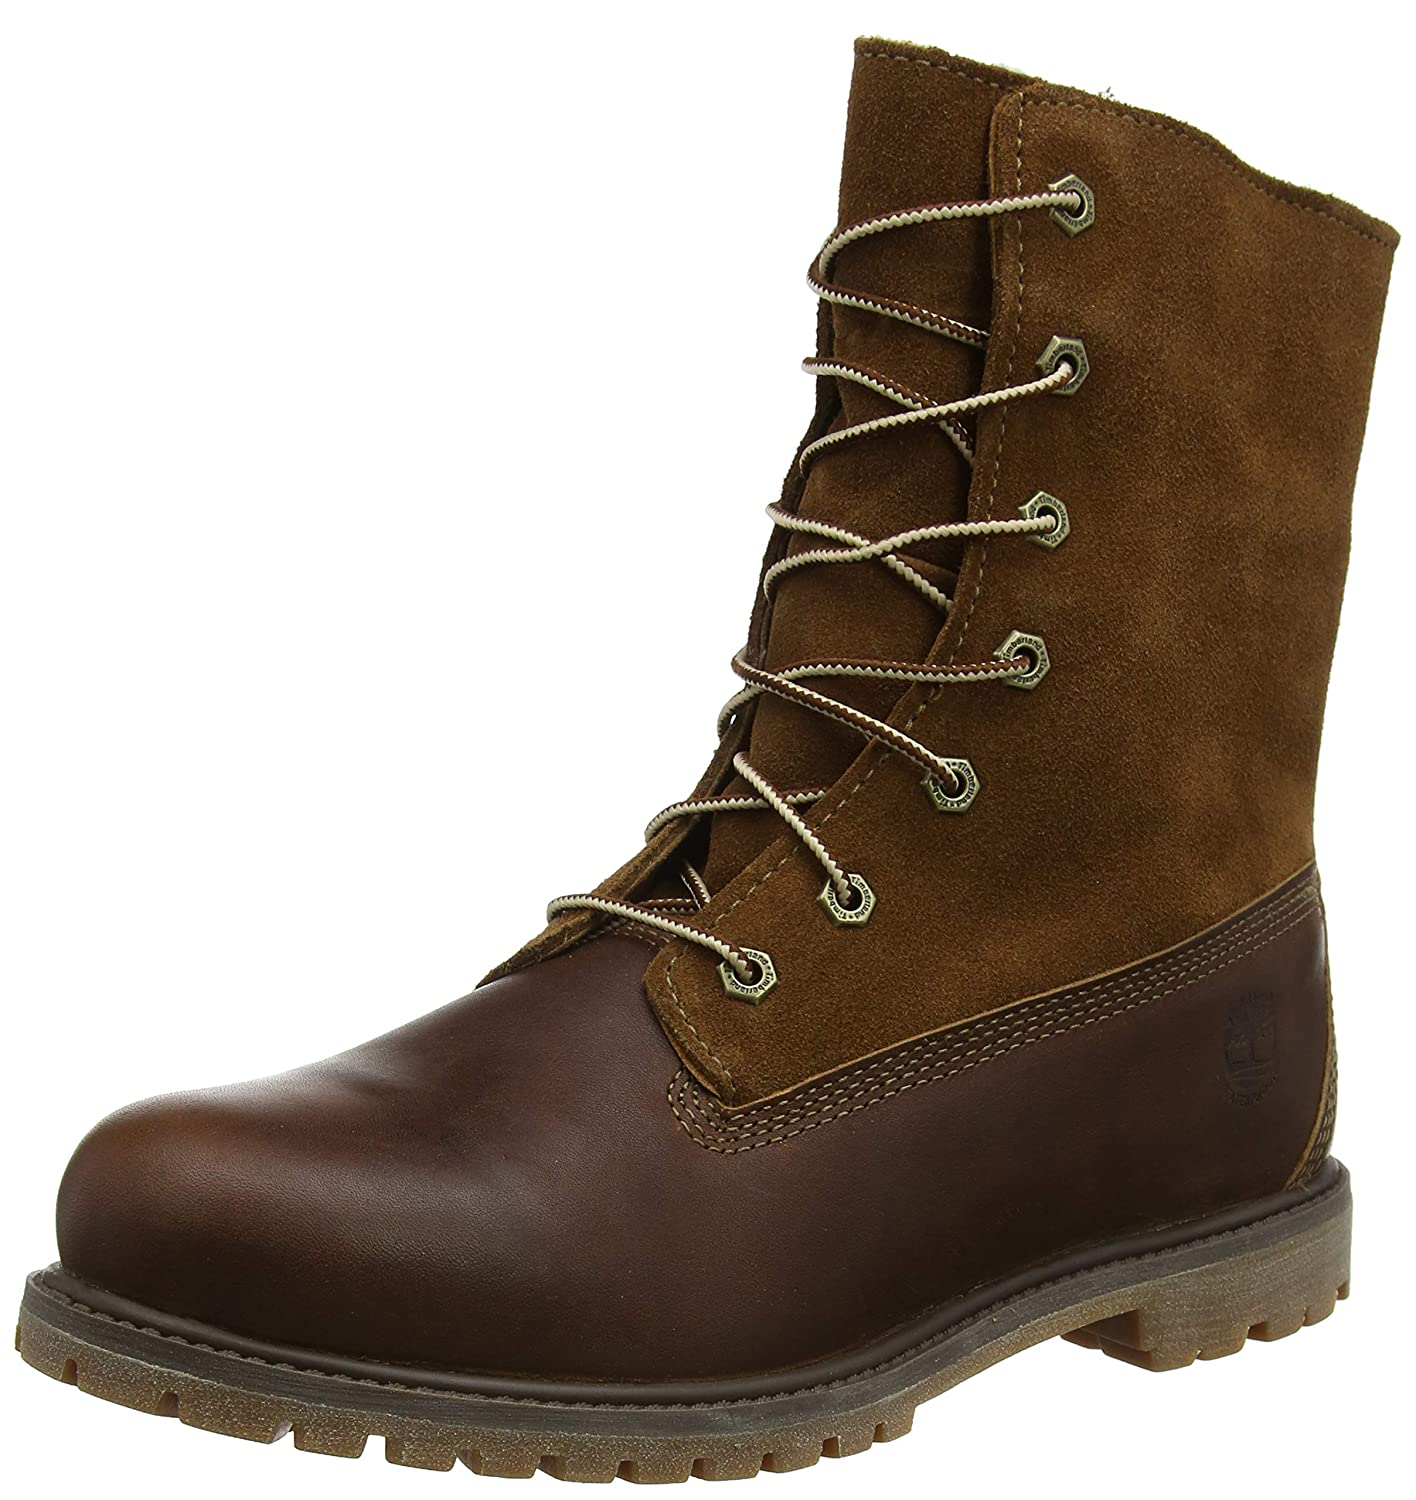 96ac5ebbc43 Timberland Authentics Teddy Fleece Water Proof Fold Down, Women's Boots